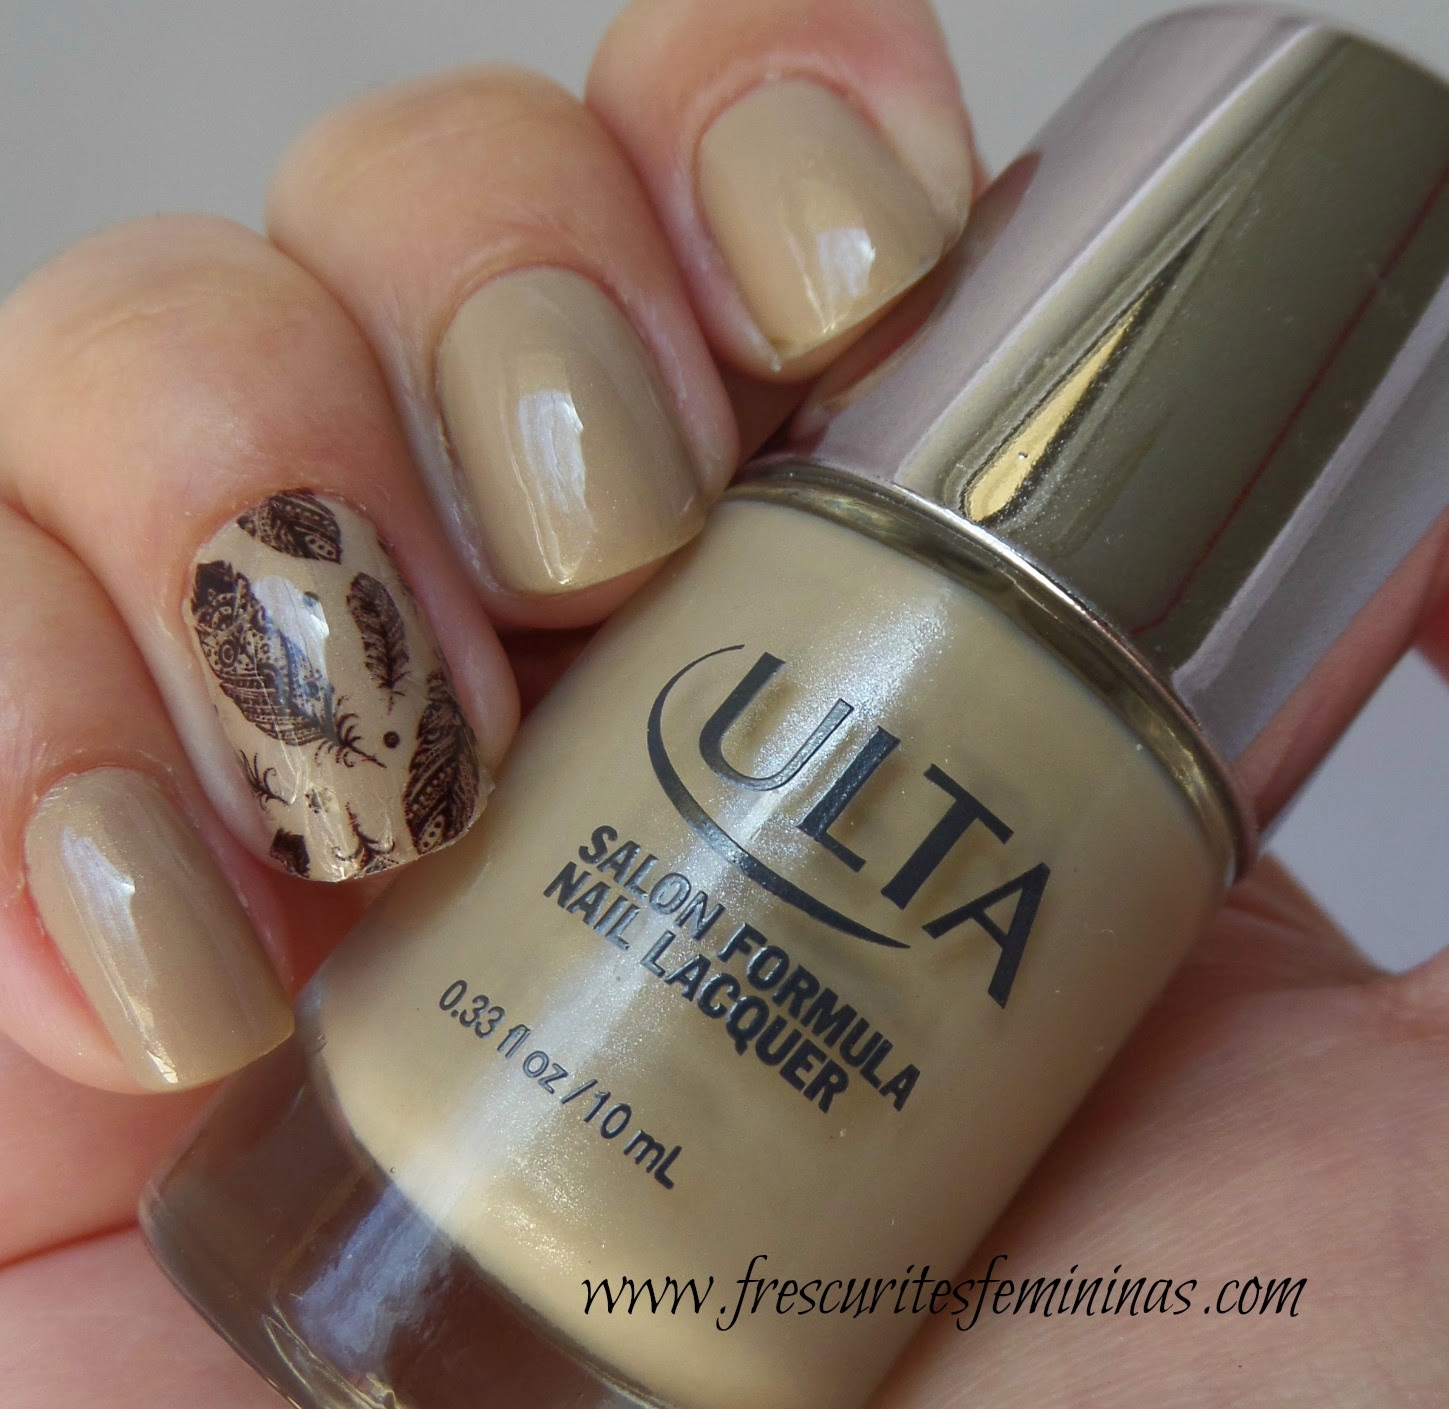 Ulta, Ulta Nail Polish, on taupe of the world, frescurites femininas, esmalte nude, pelicula de unha, esmalte bonito